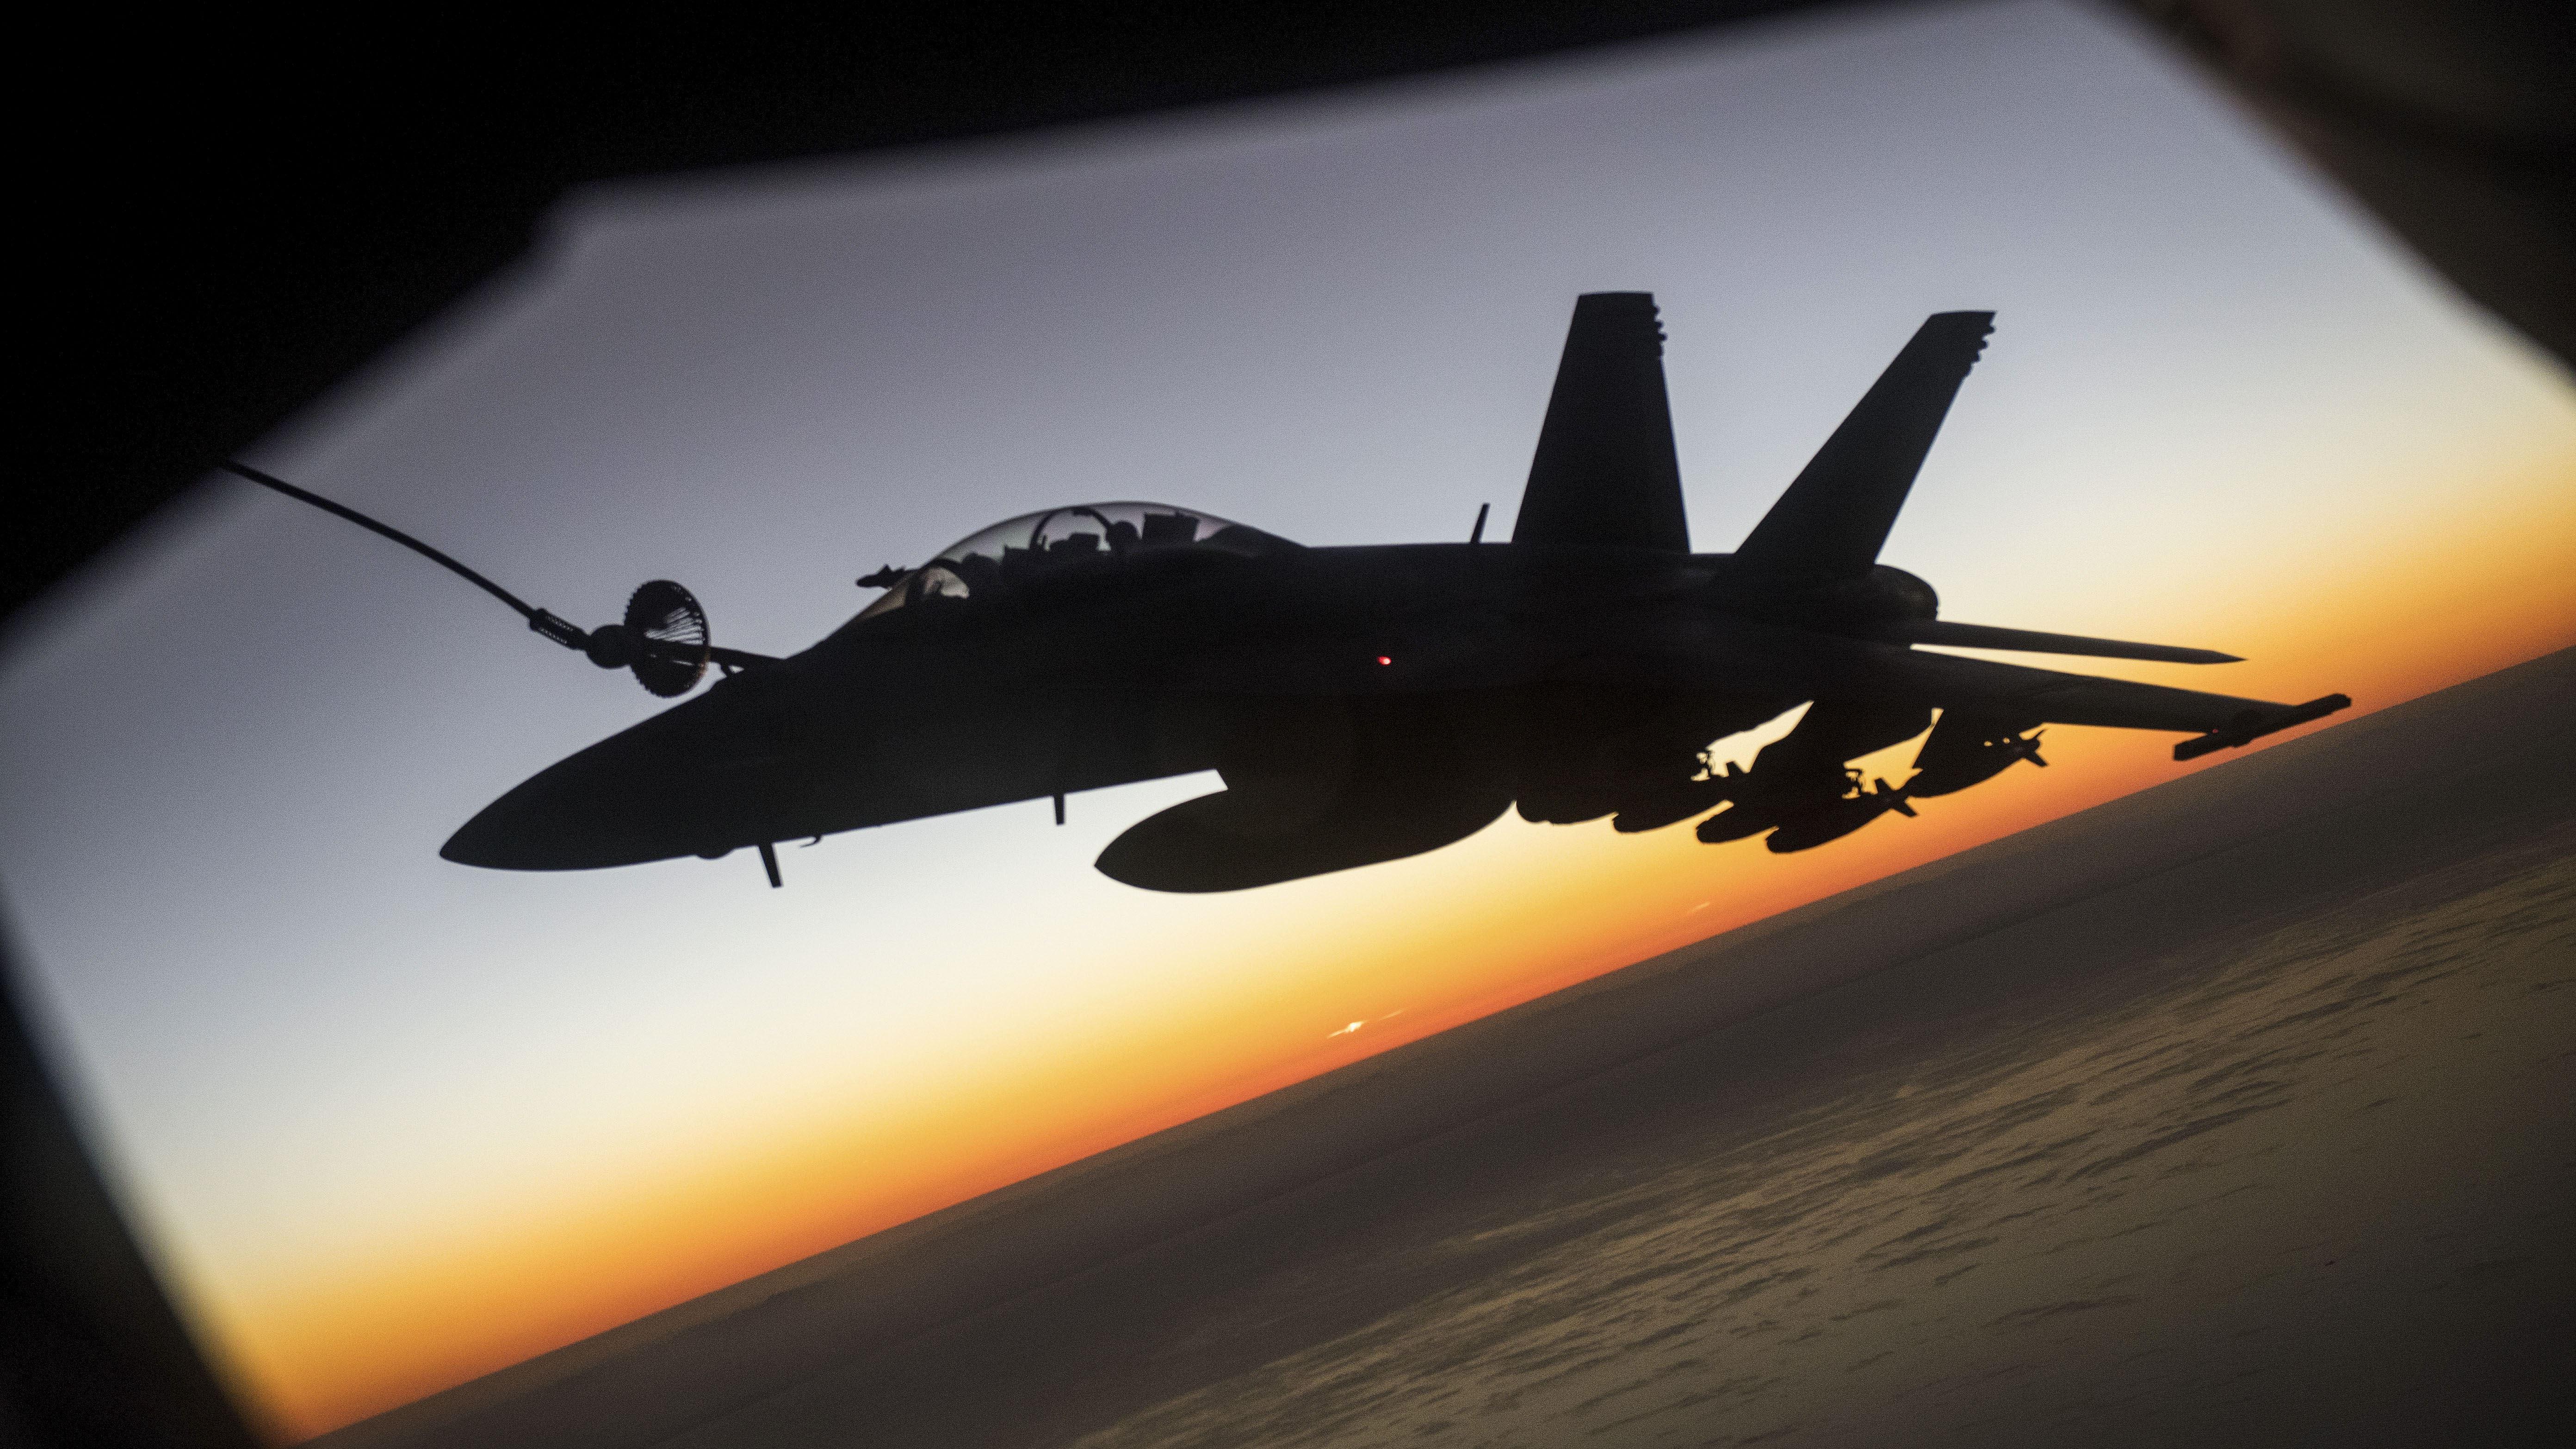 A Navy Super Hornet receives fuel from an Air Force KC-135 Stratotanker over Afghanistan, Dec. 7, 2017. Navy Super Hornets conducted a series of precision airstrikes against six Taliban narcotic targets in Helmand province. Air Force photo by Jeff Parkinson